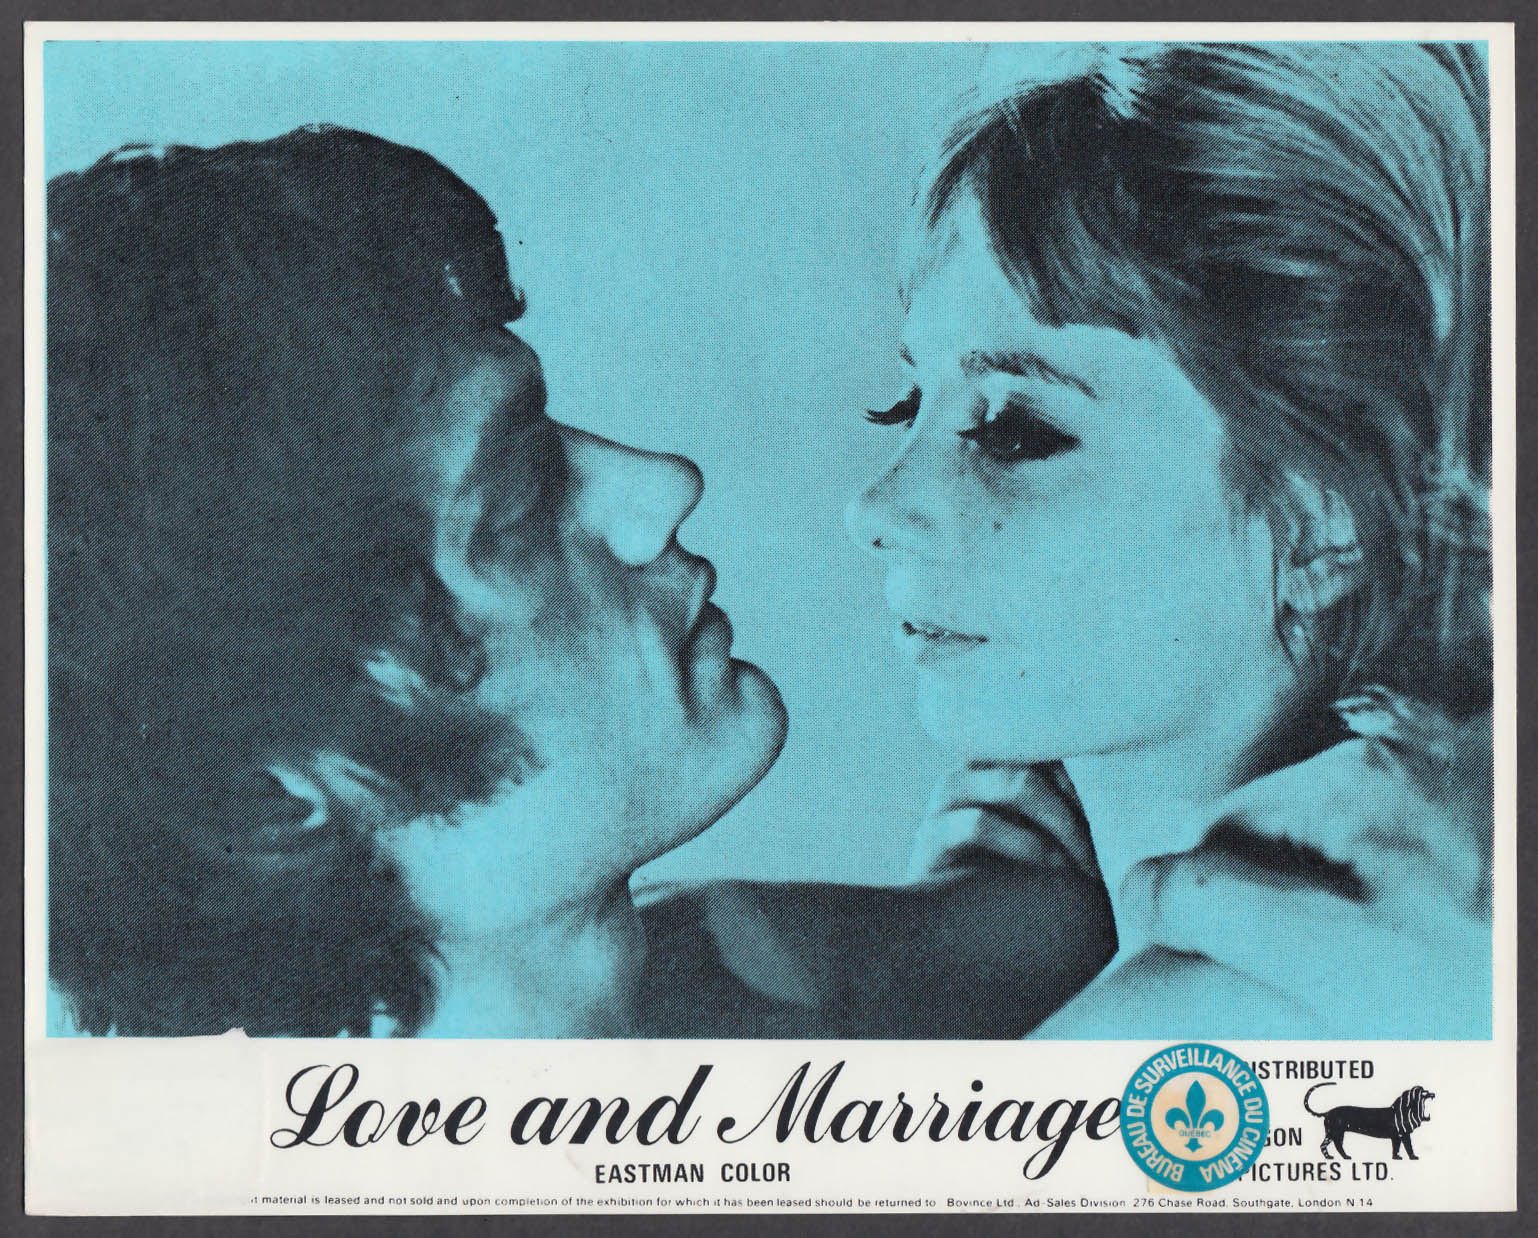 Love and Marriage 8x10 lobby card 1973